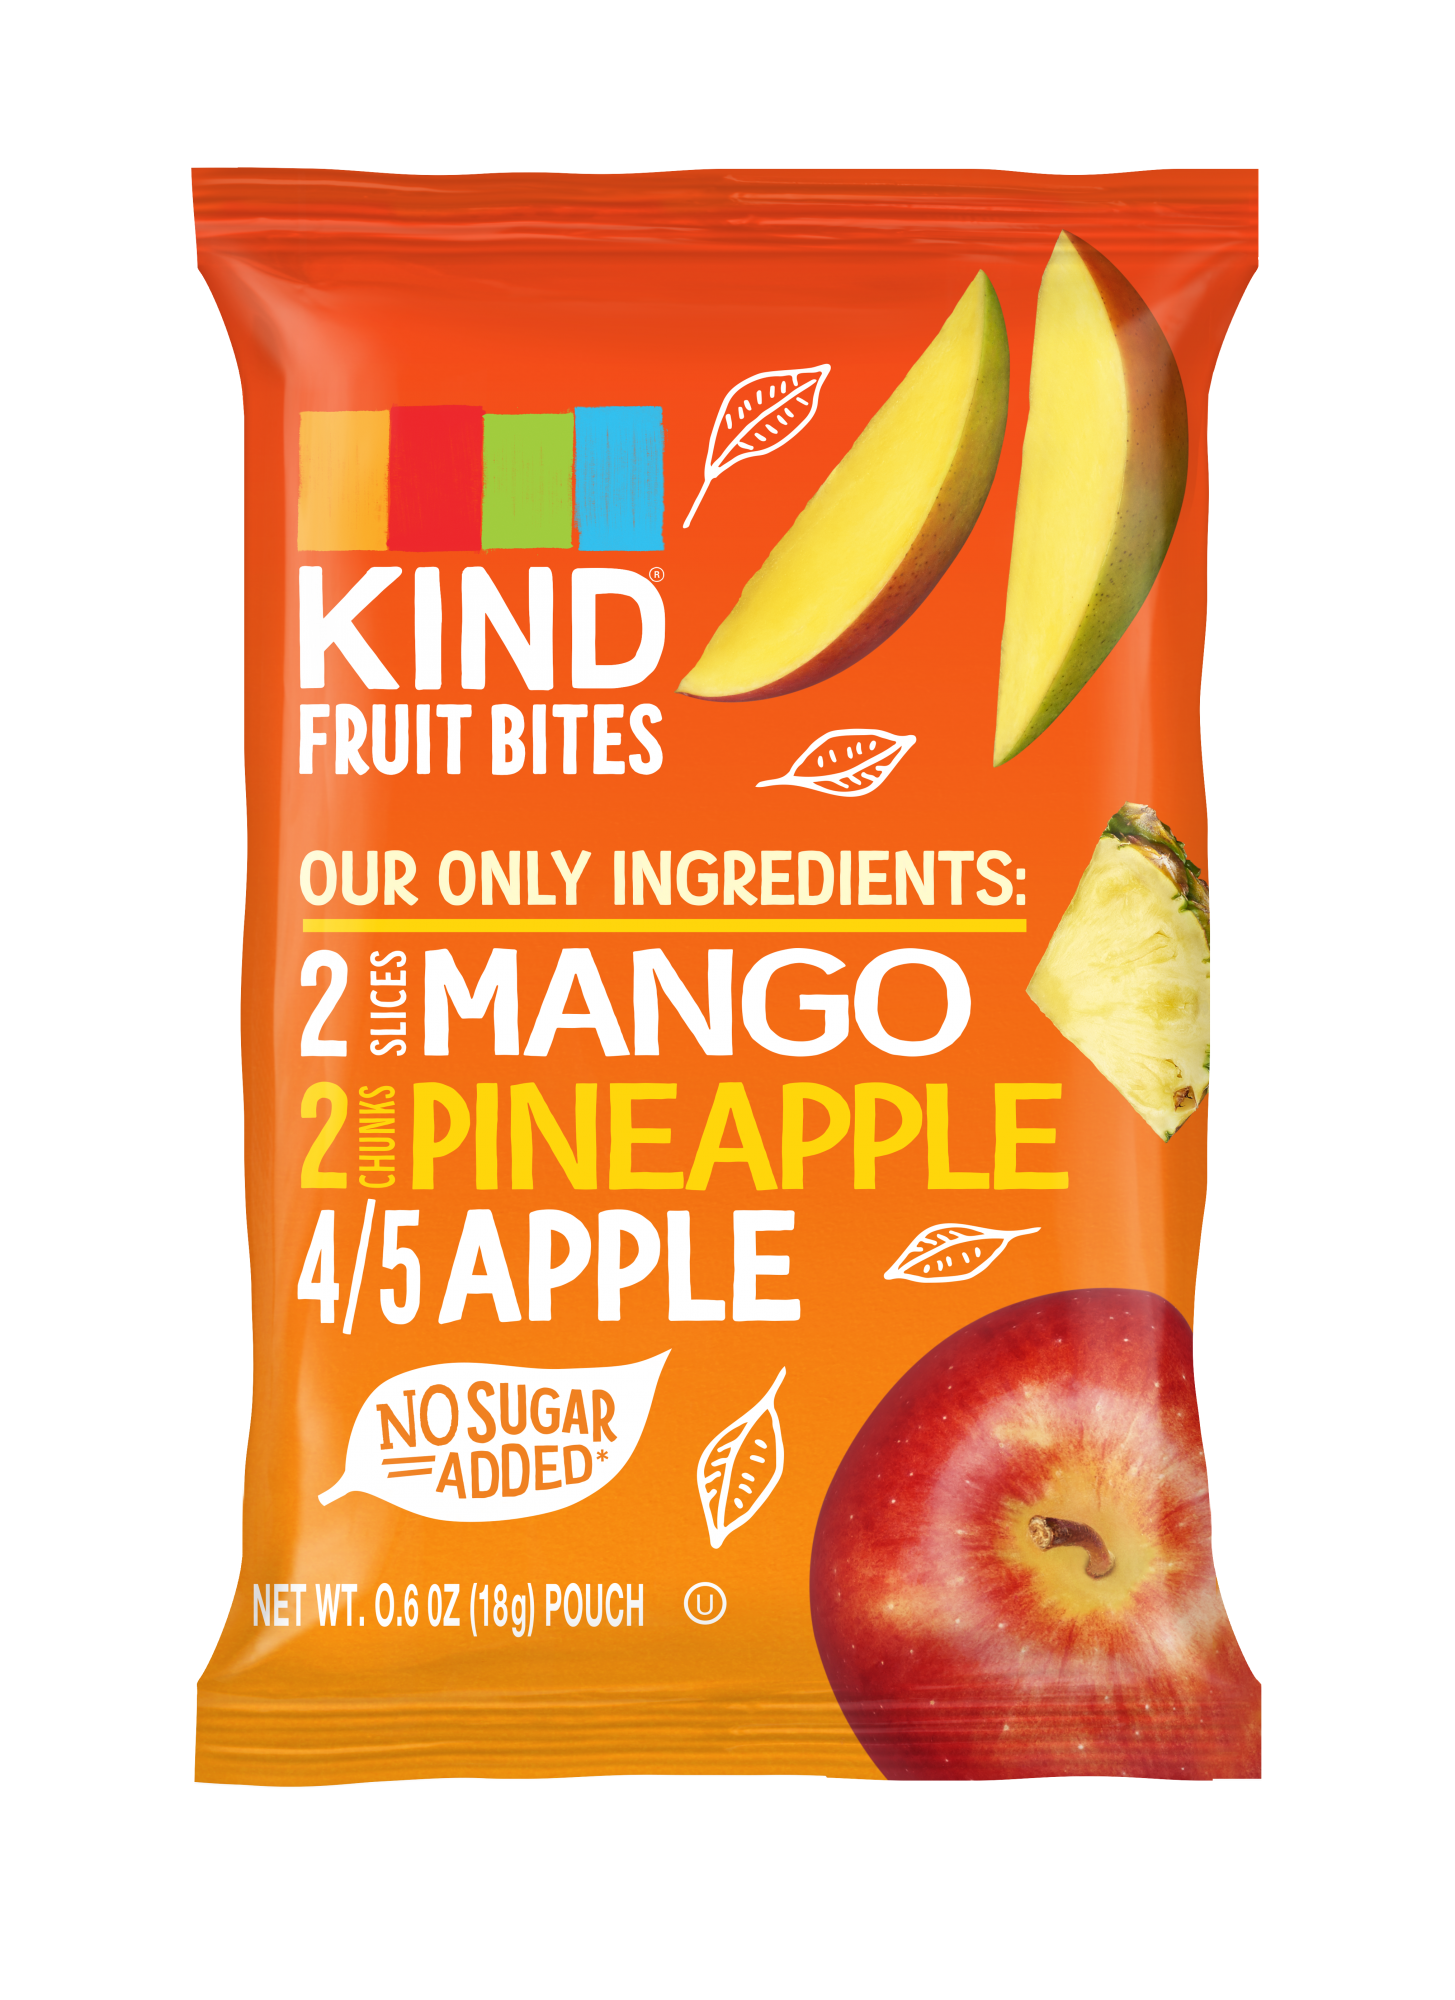 FruitBites_MangoPineappleApple_Pouch